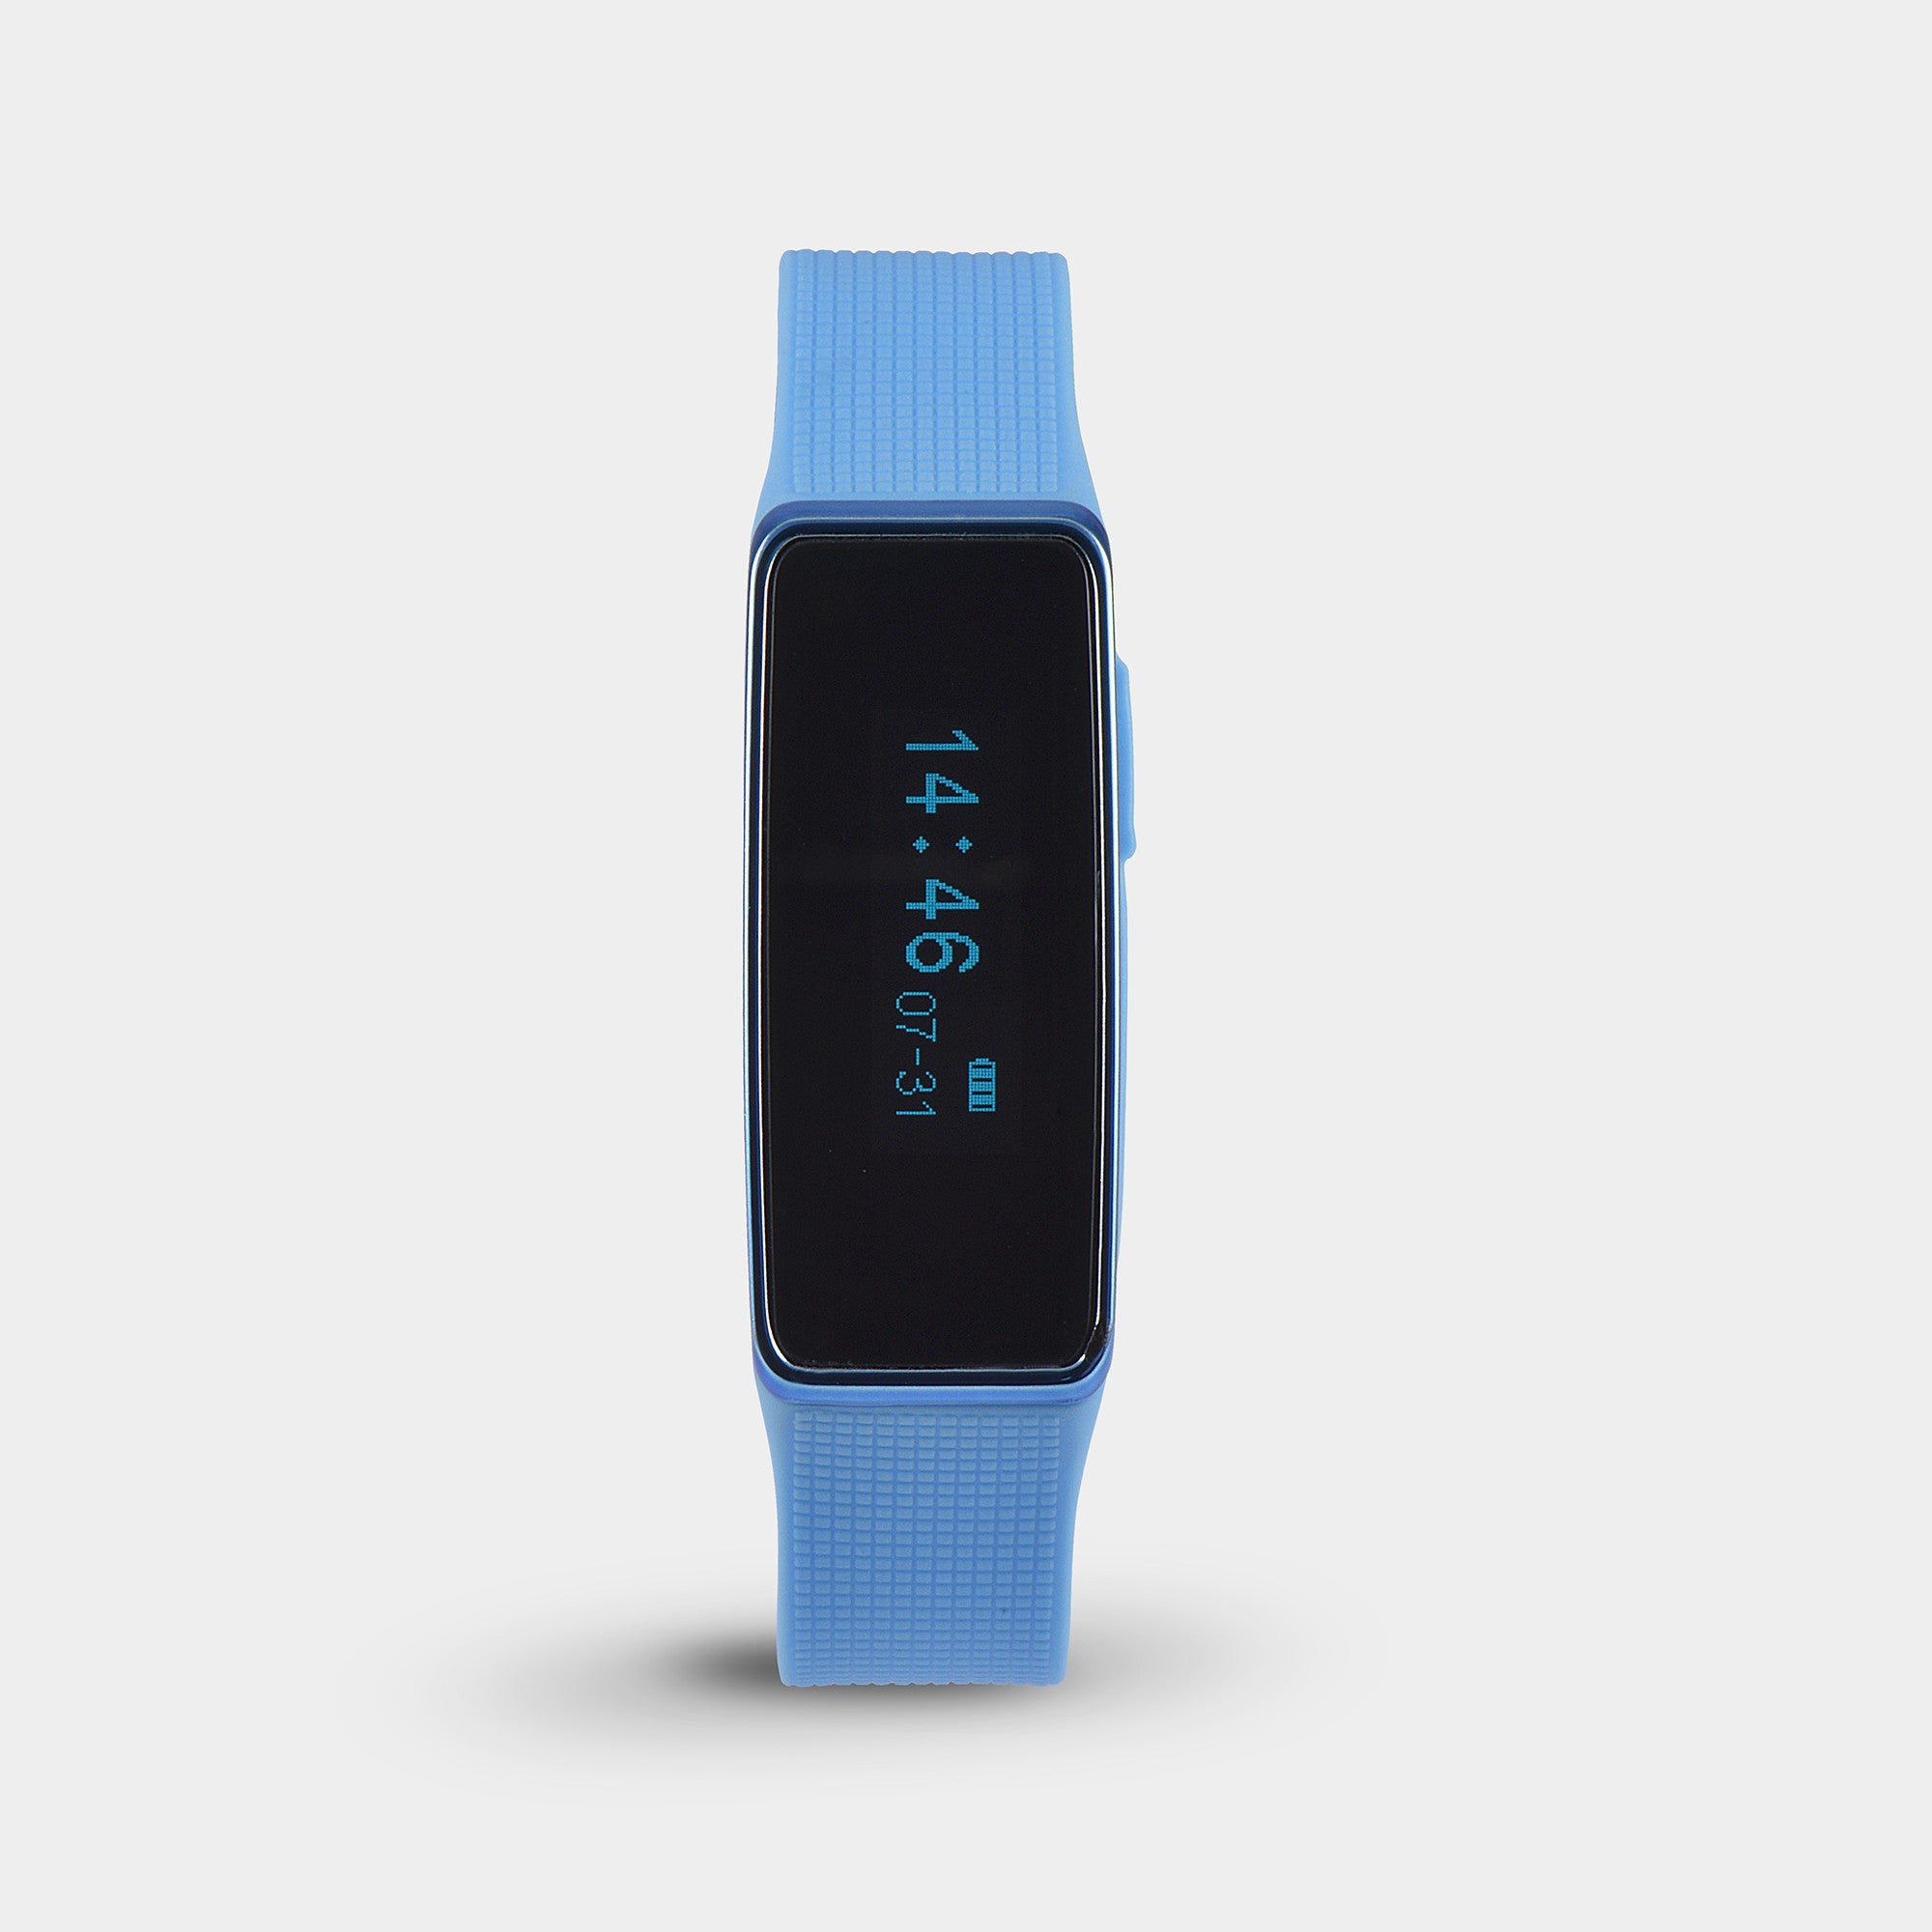 NUBAND ACTIV+ Wireless Activity Tracker (Blue)